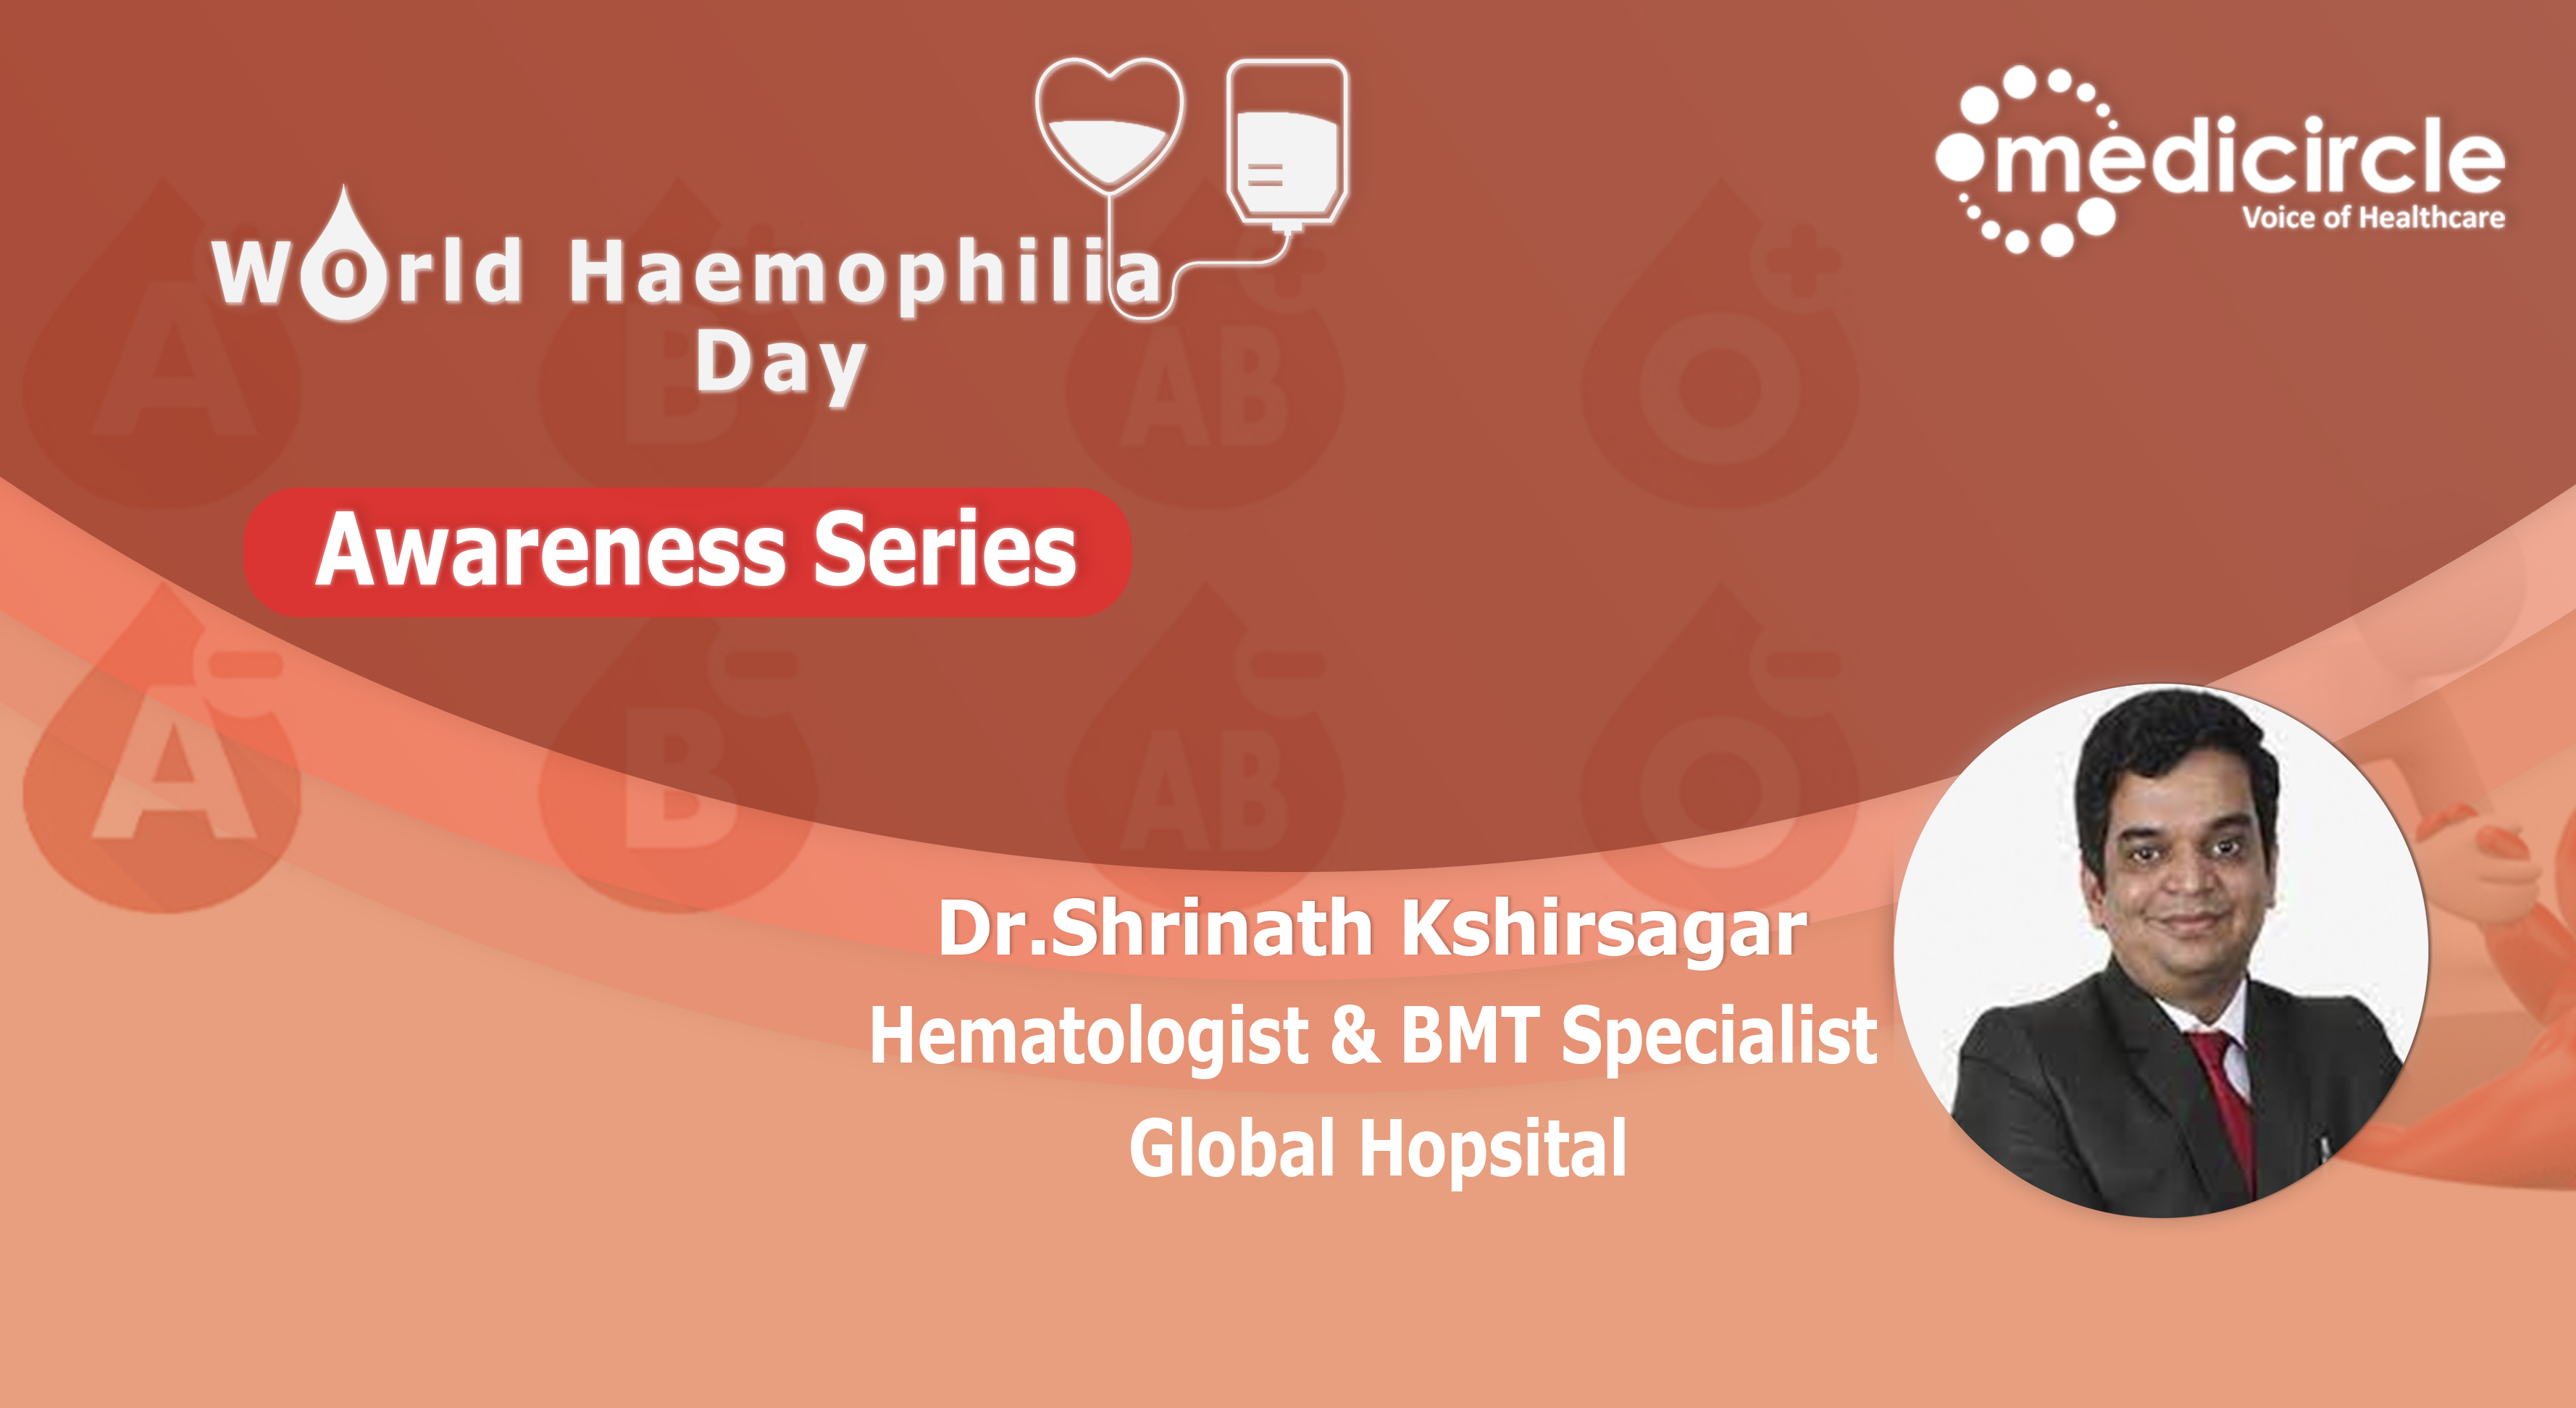 Dr. Shrinath Kshirsagar on preventive and curative measures of Haemophilia